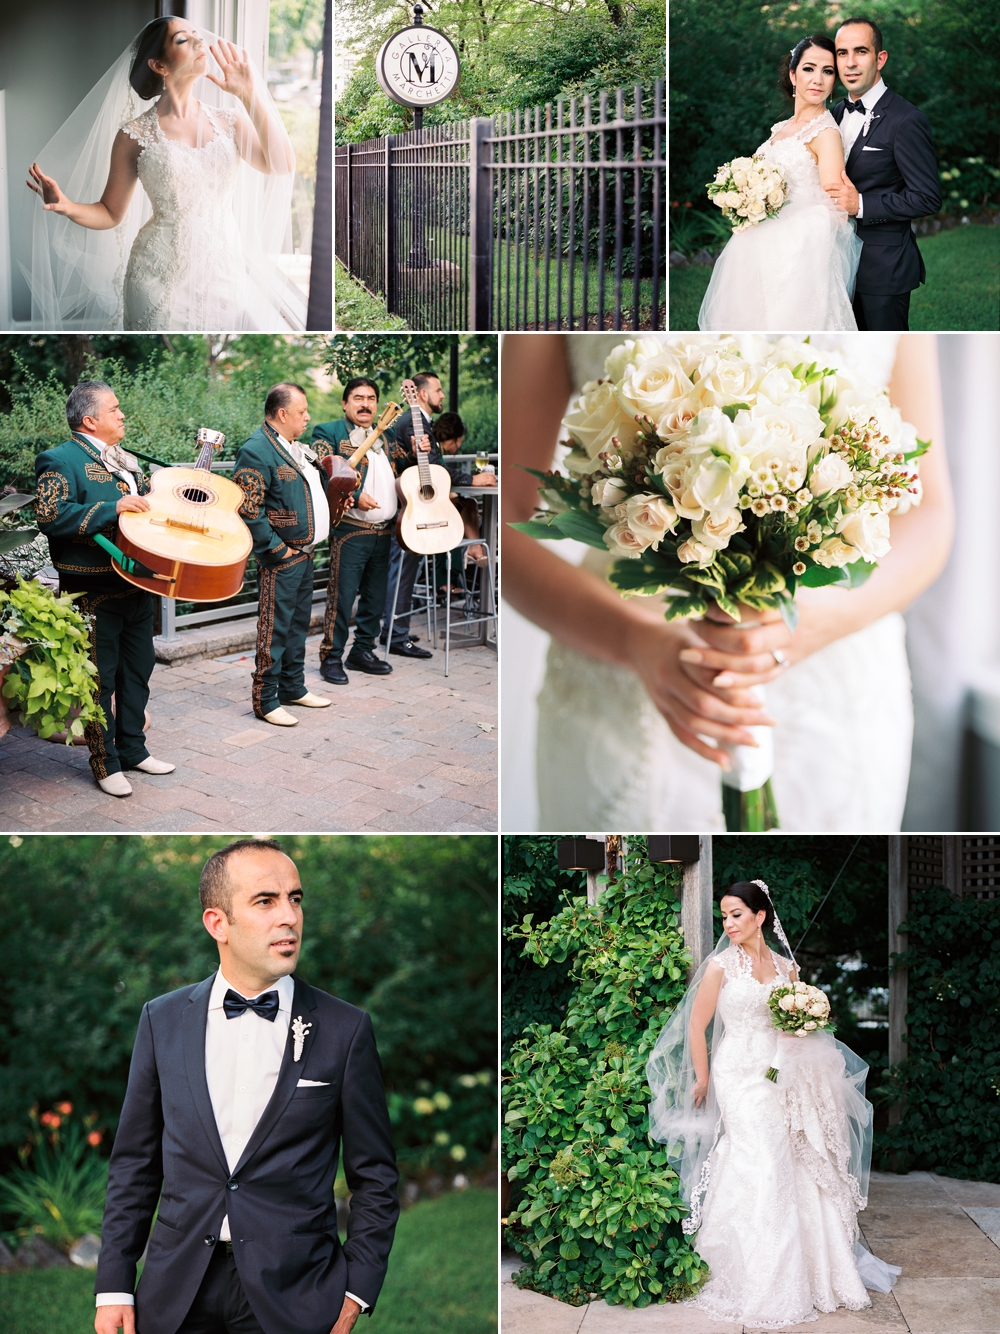 bride, chicagoweddingphotographer, galleriamarchetti, colors, pentax645, mariachi, flowers, groom.jpg